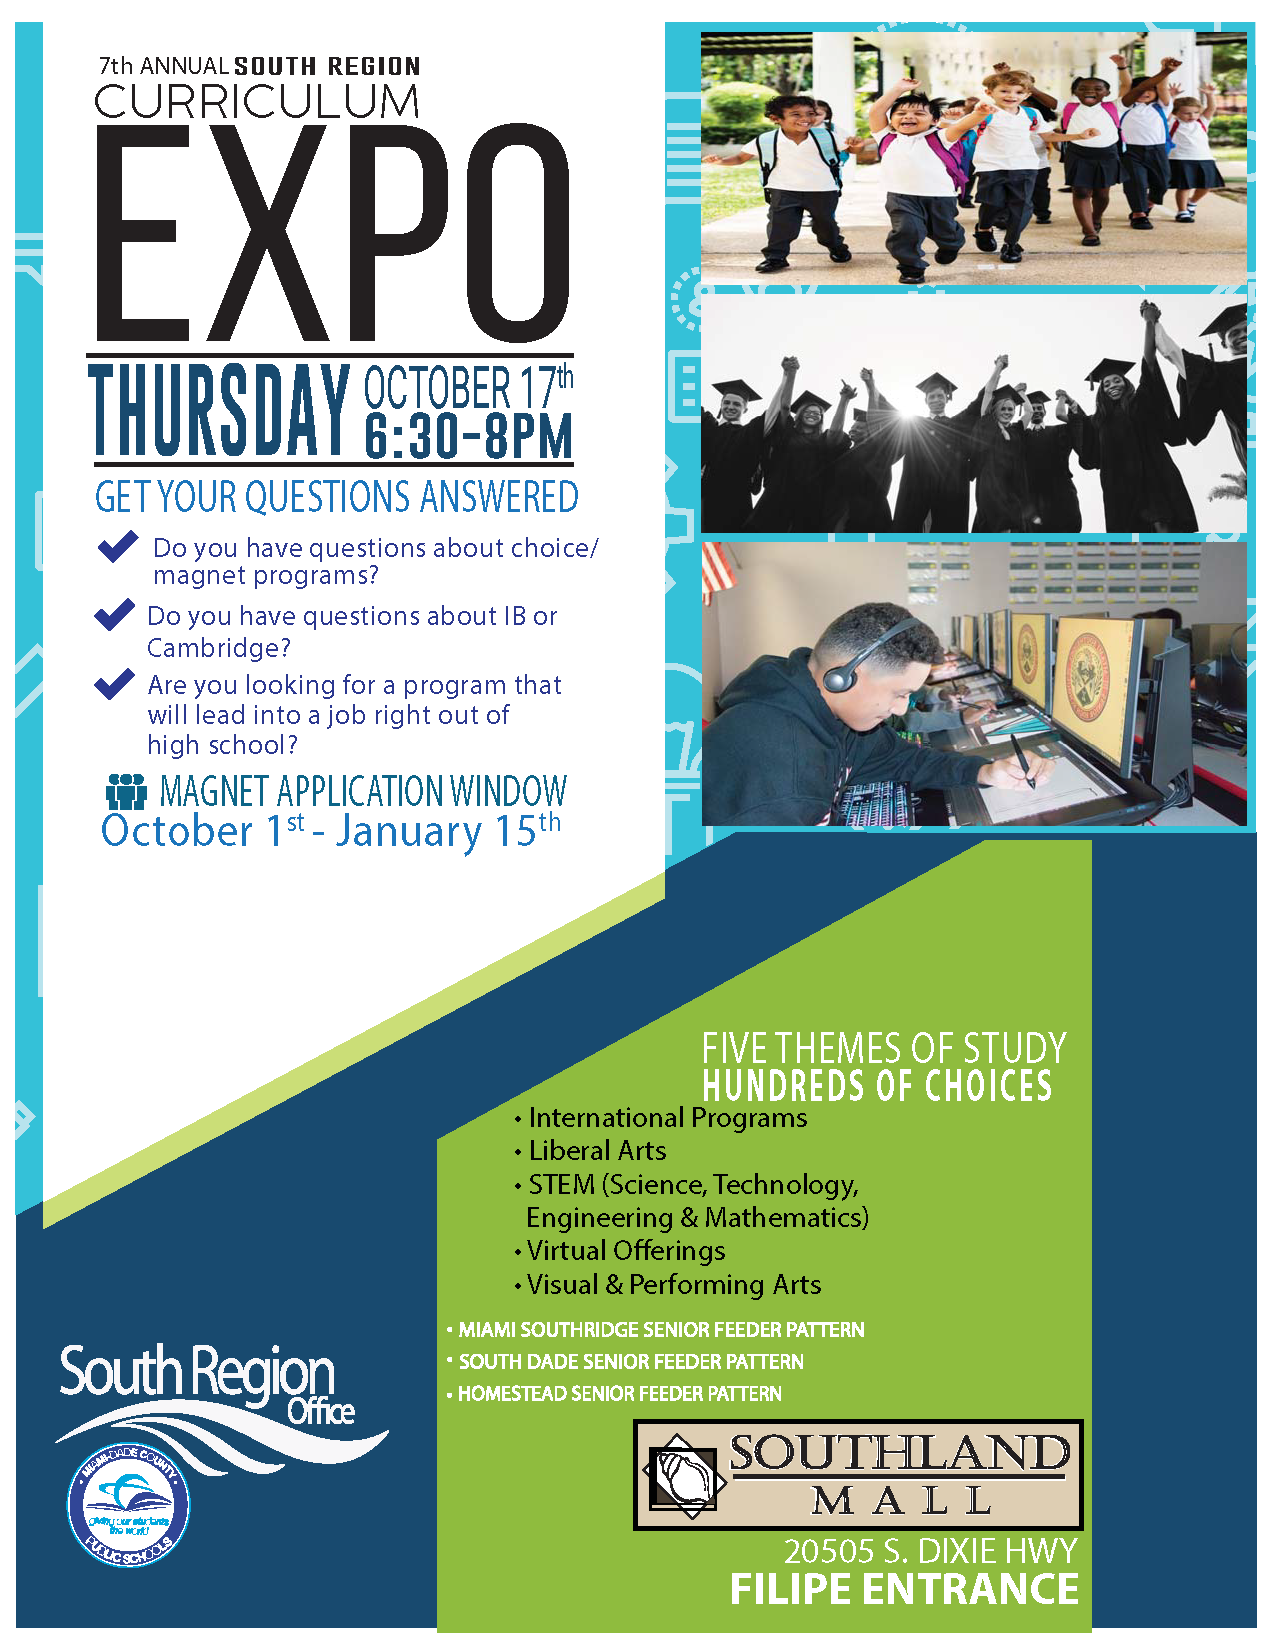 Curriculum Expo @ Southland Mall (FILIPE ENTRANCE) | Cutler Bay | Florida | United States